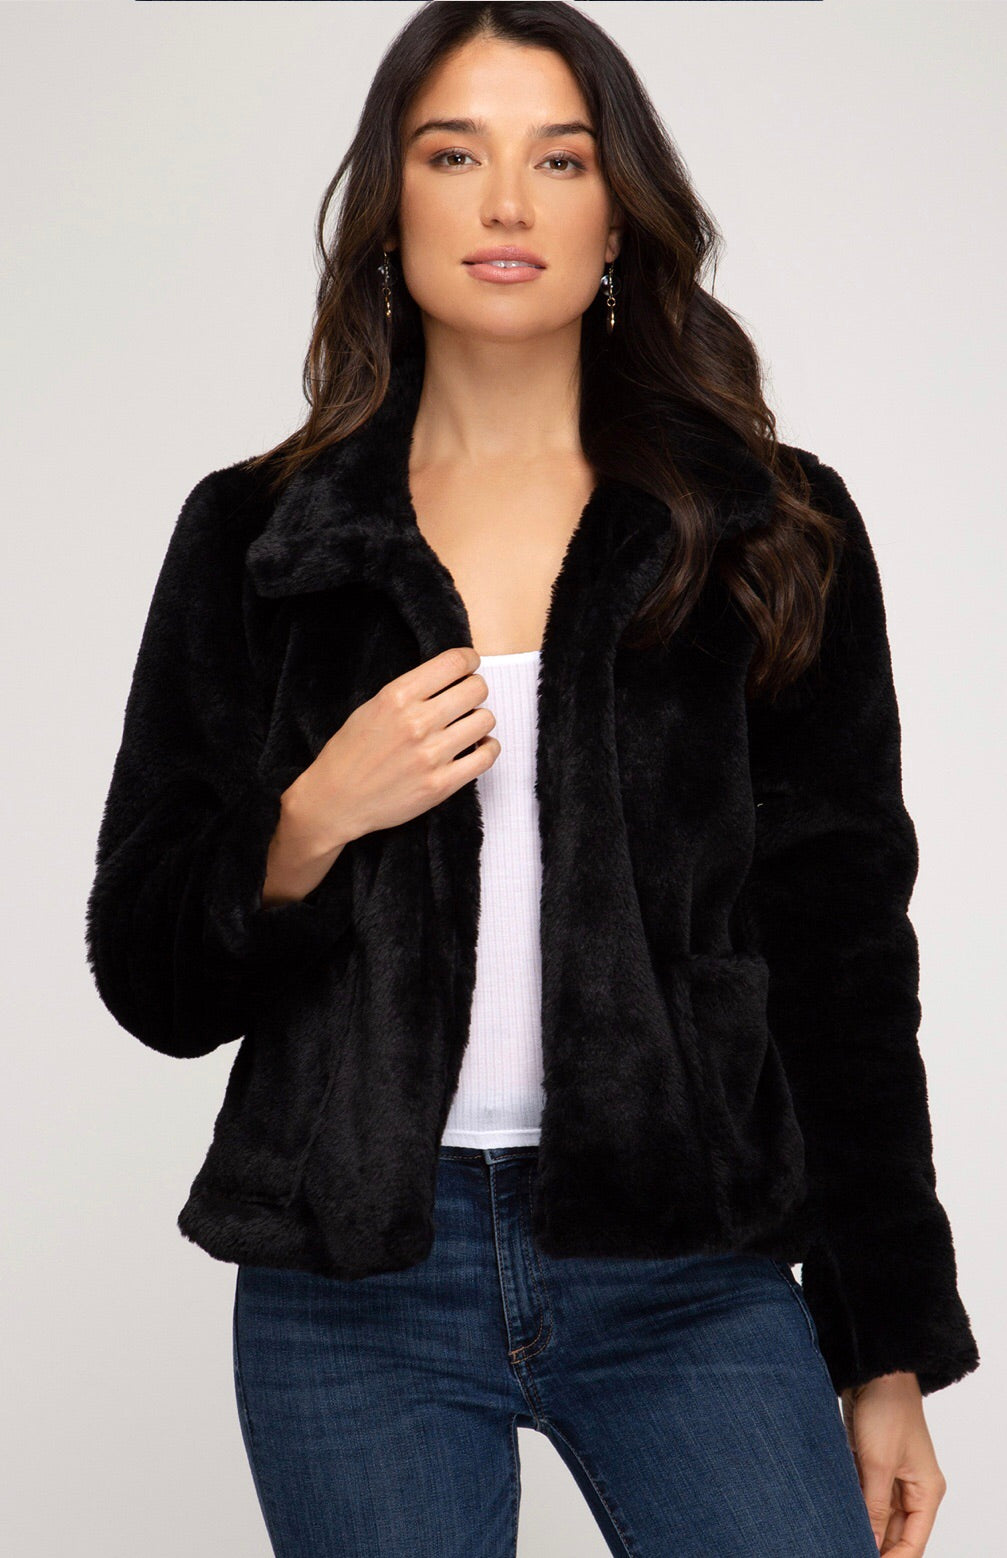 Cropped Faux Fur Jacket - Blush Boutique